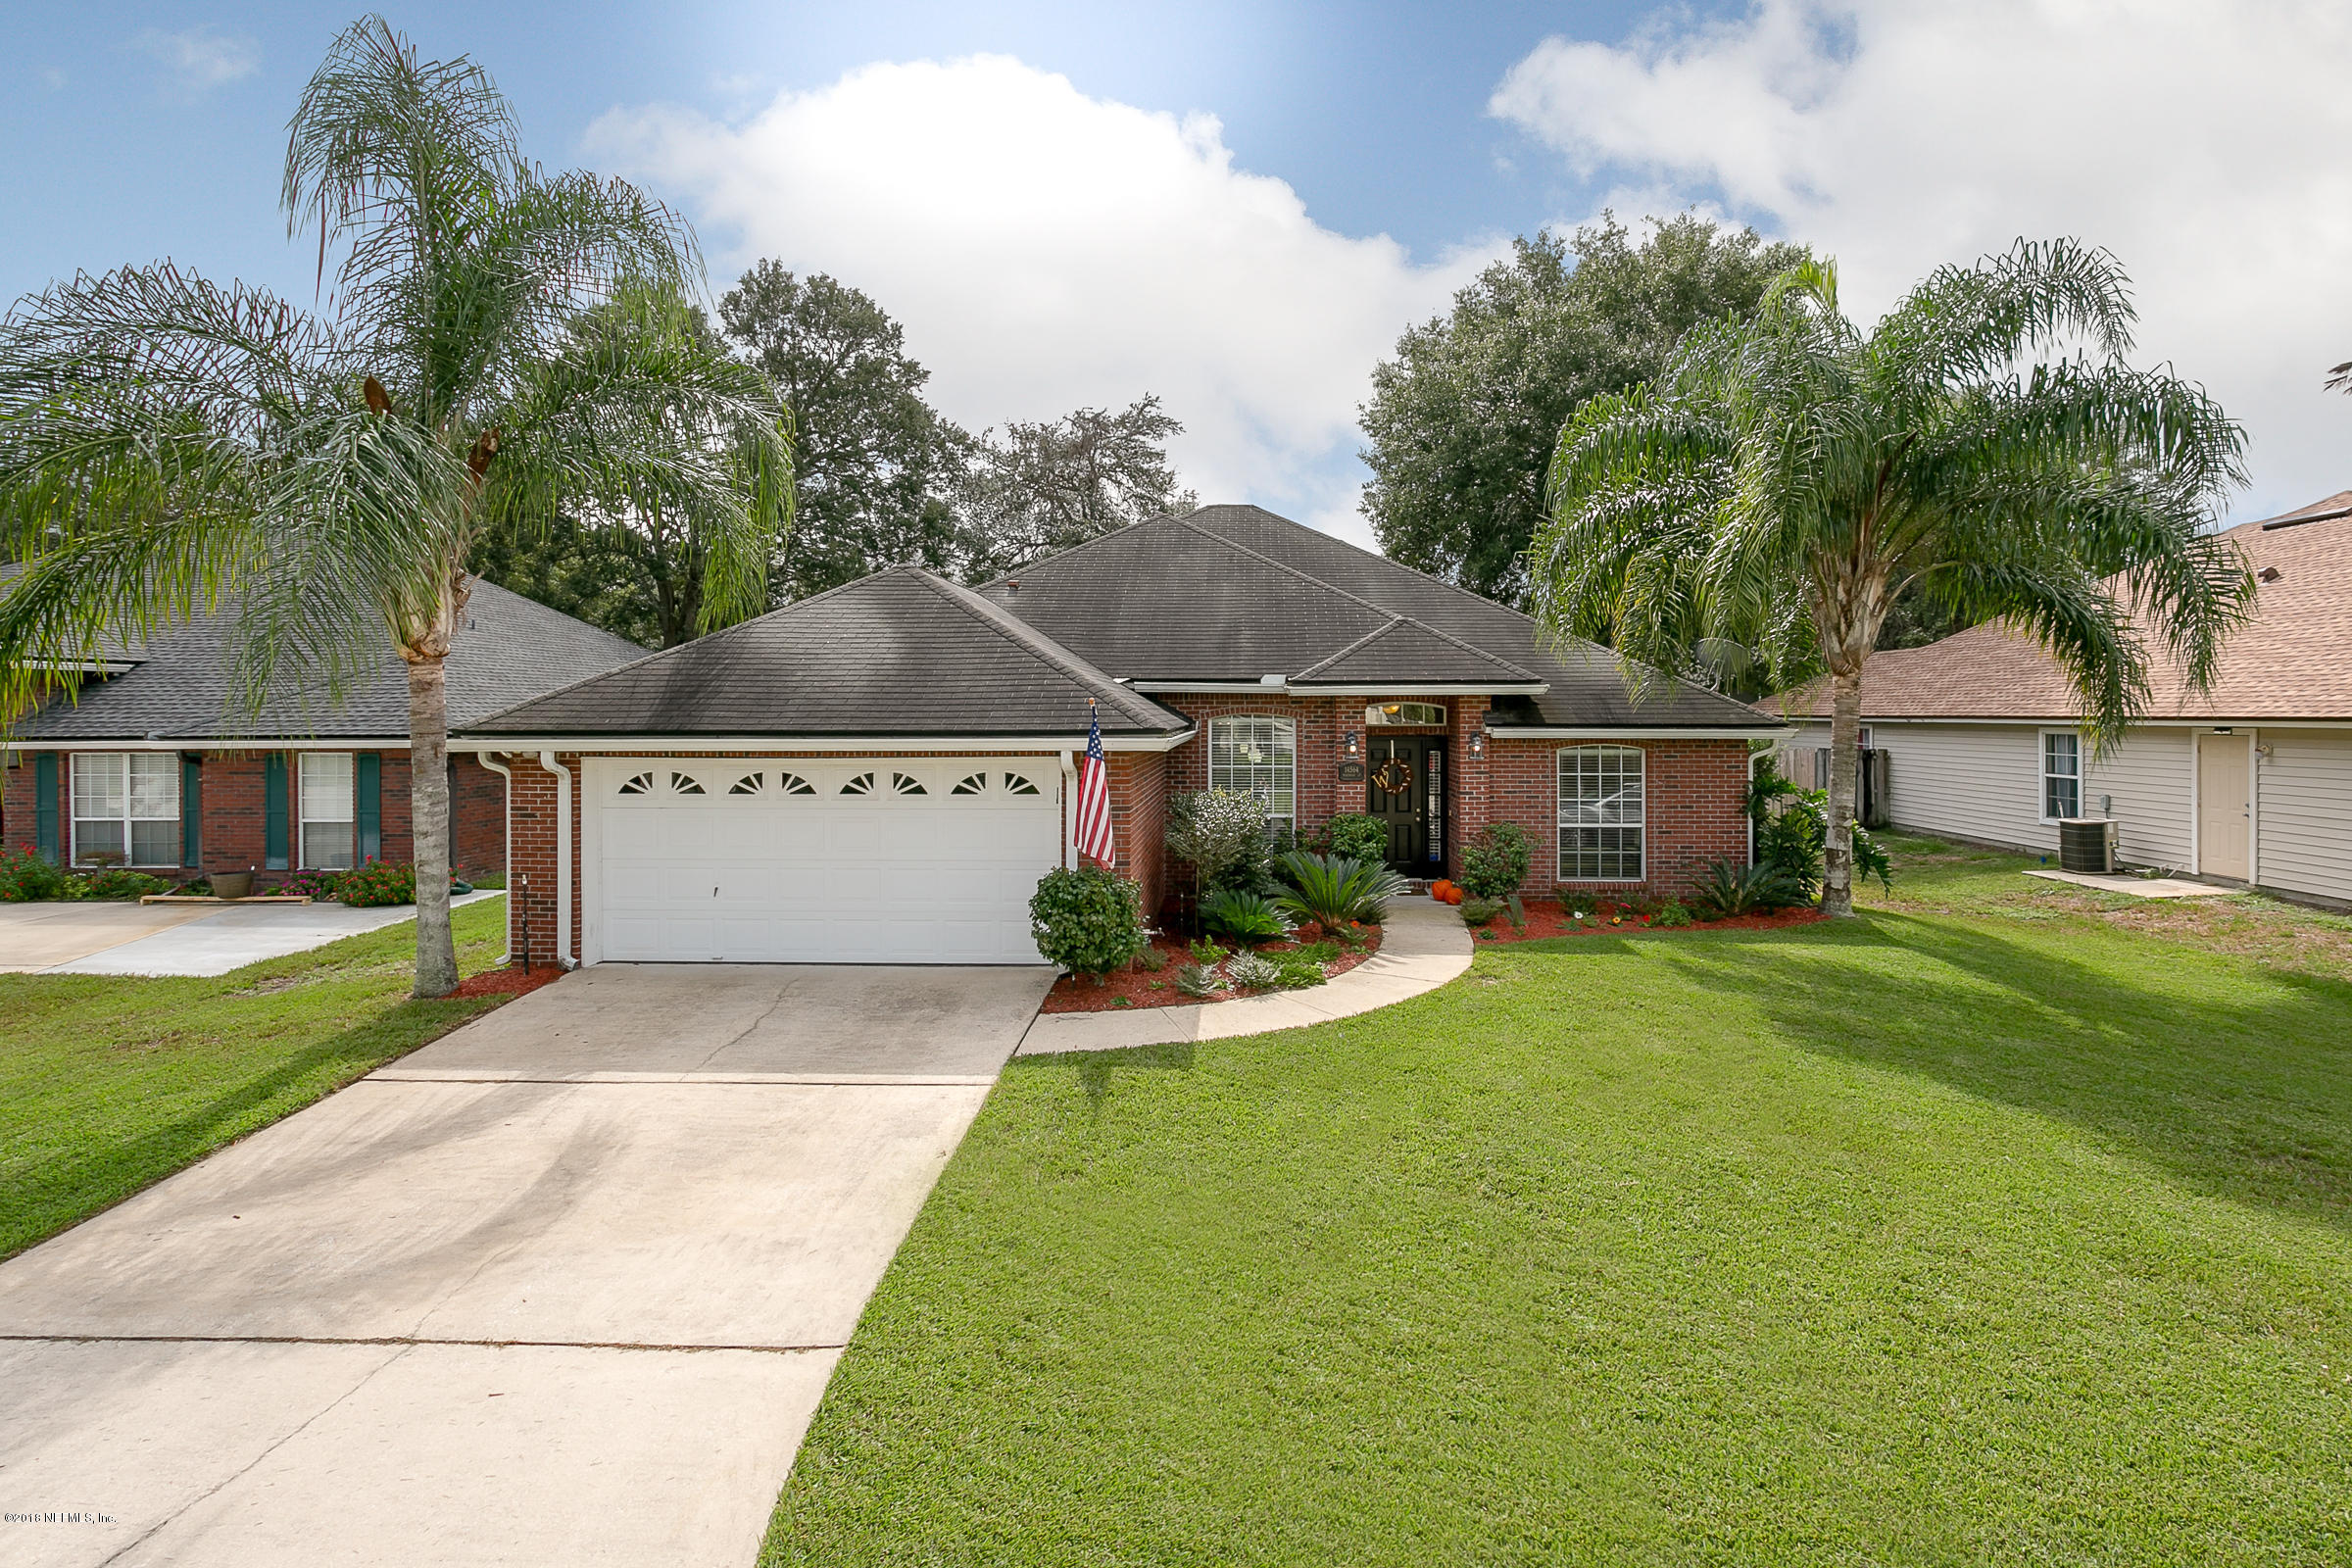 14564 HAREWOOD, JACKSONVILLE, FLORIDA 32258, 3 Bedrooms Bedrooms, ,2 BathroomsBathrooms,Residential - single family,For sale,HAREWOOD,964994